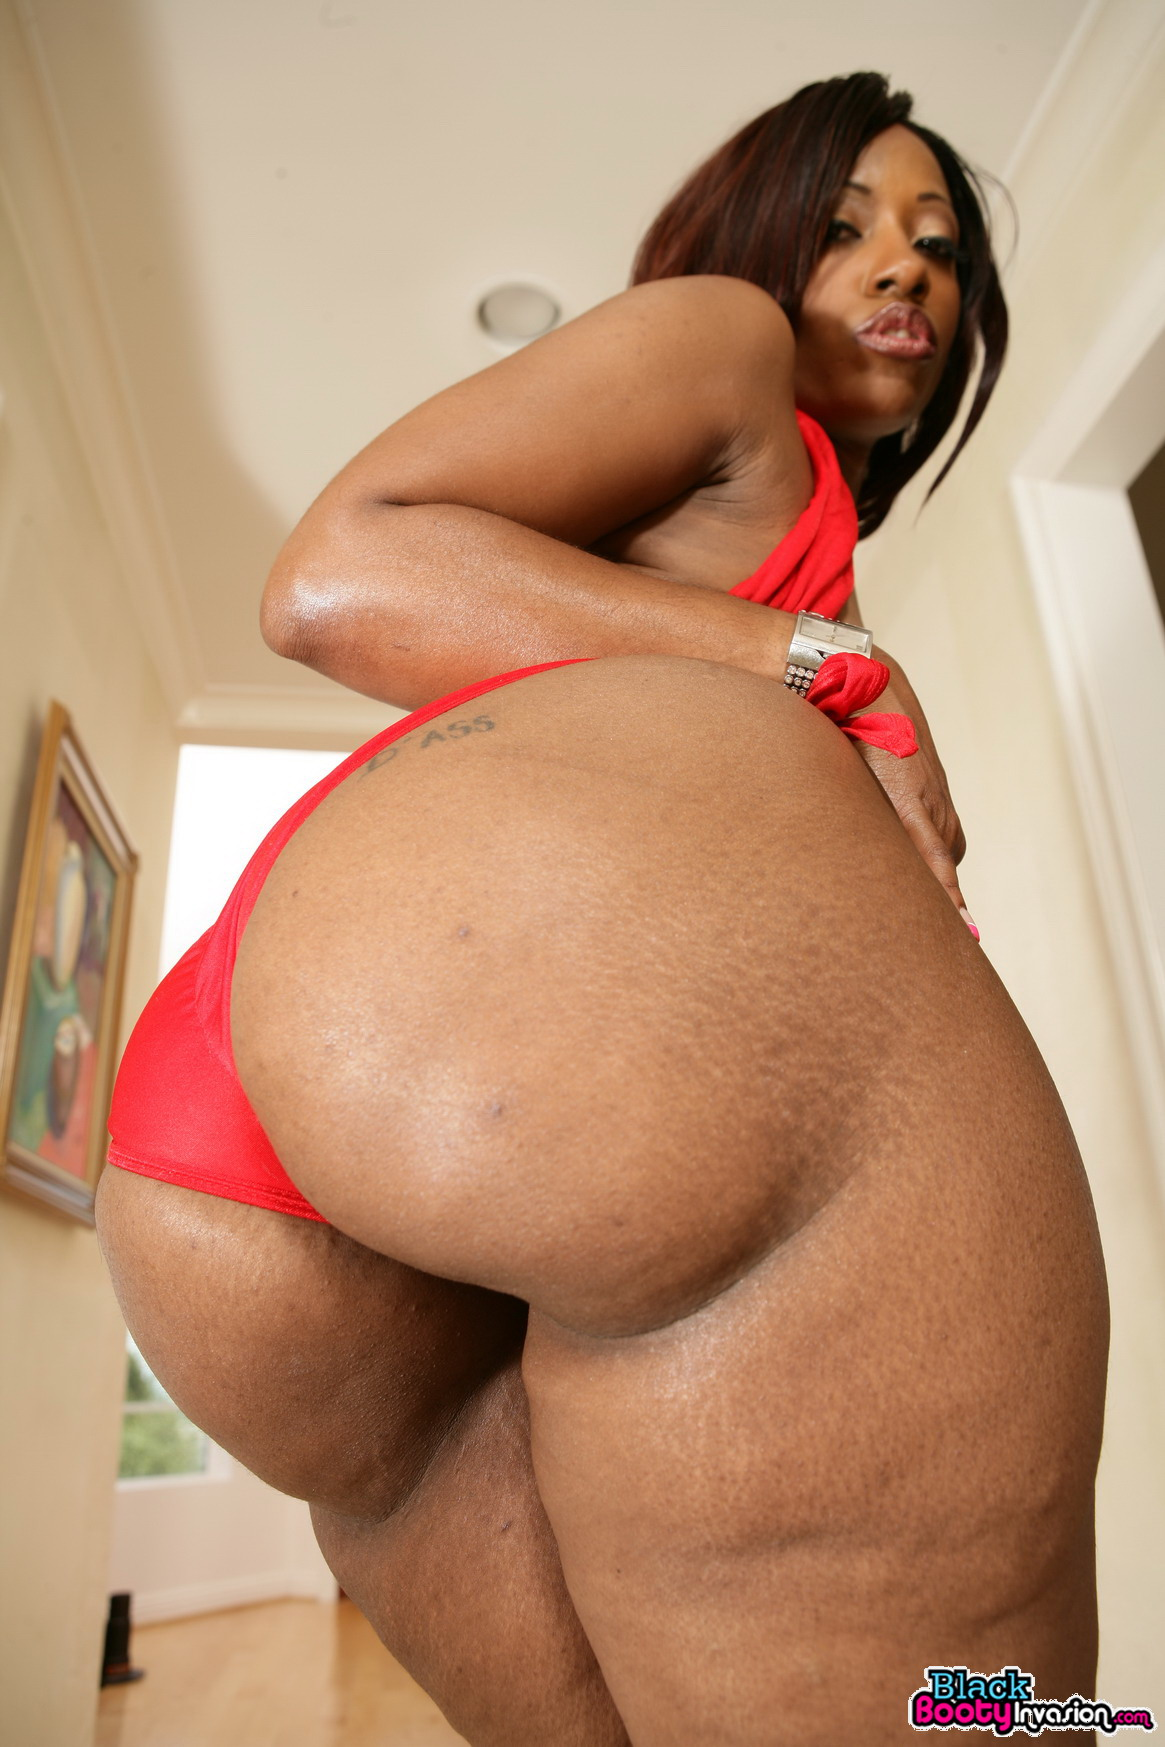 thick girl in thong gets naked